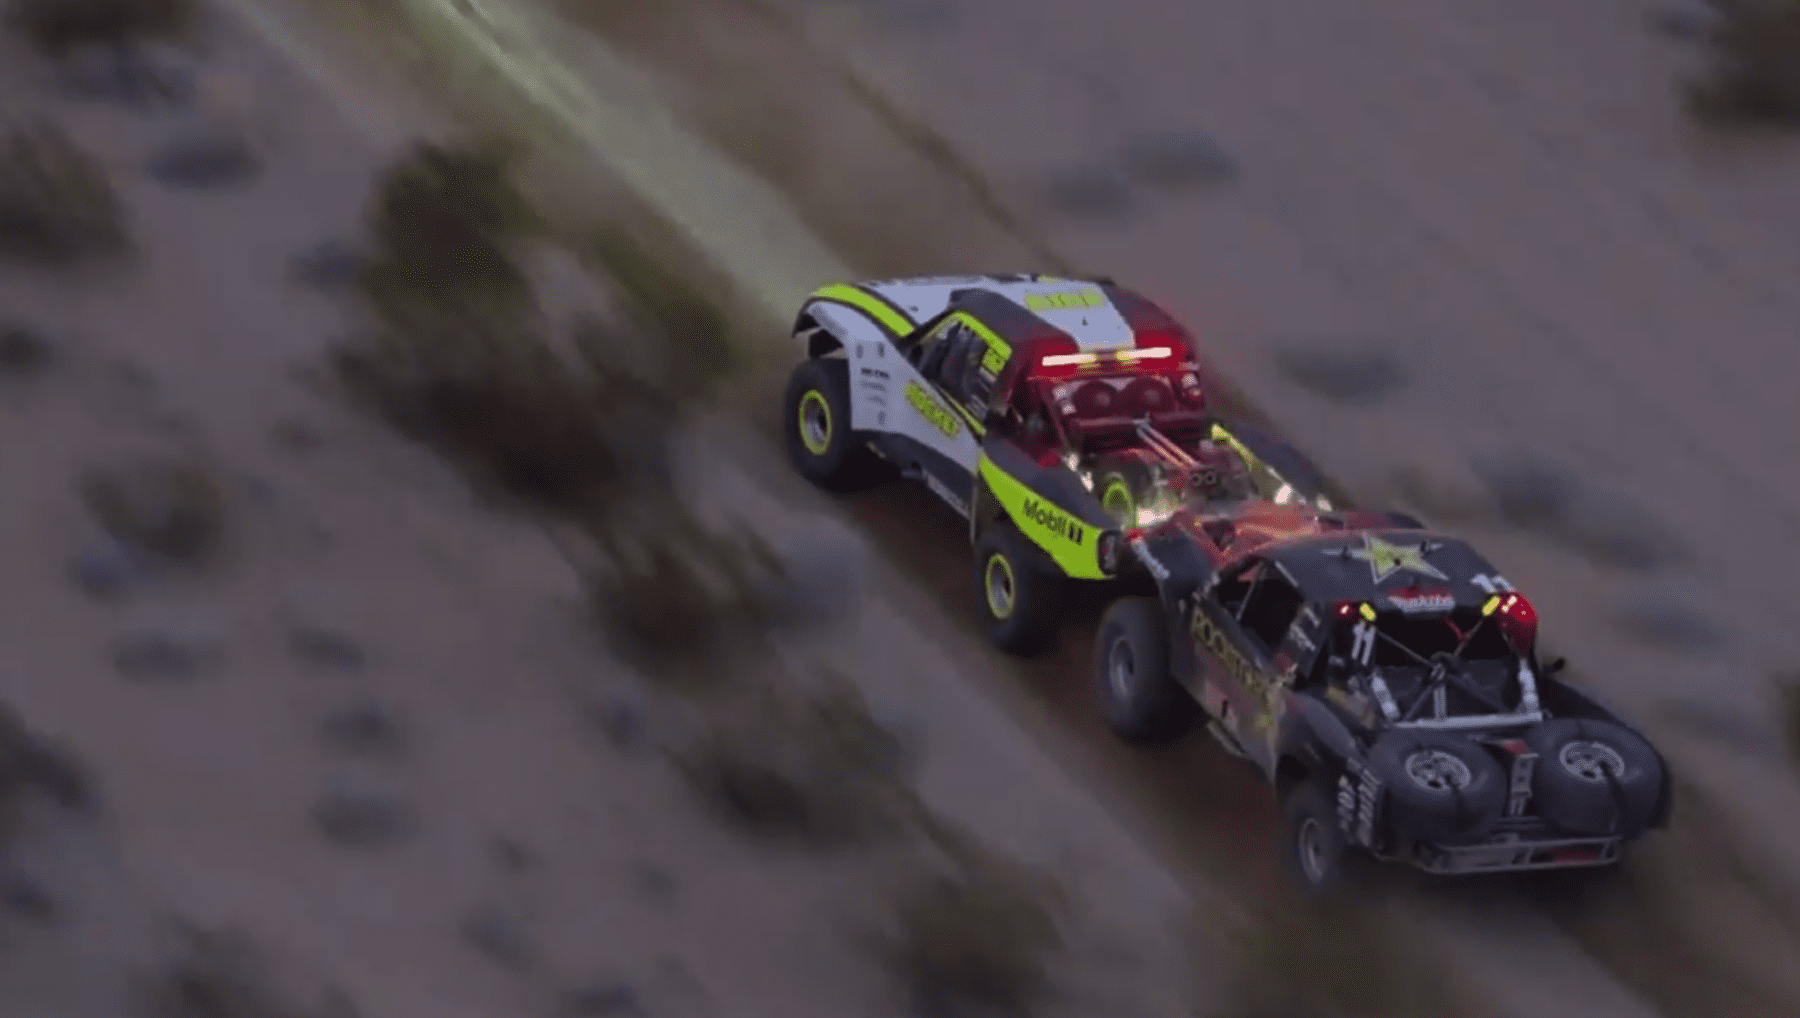 Jenson Button gets nerfed at the Mint 400